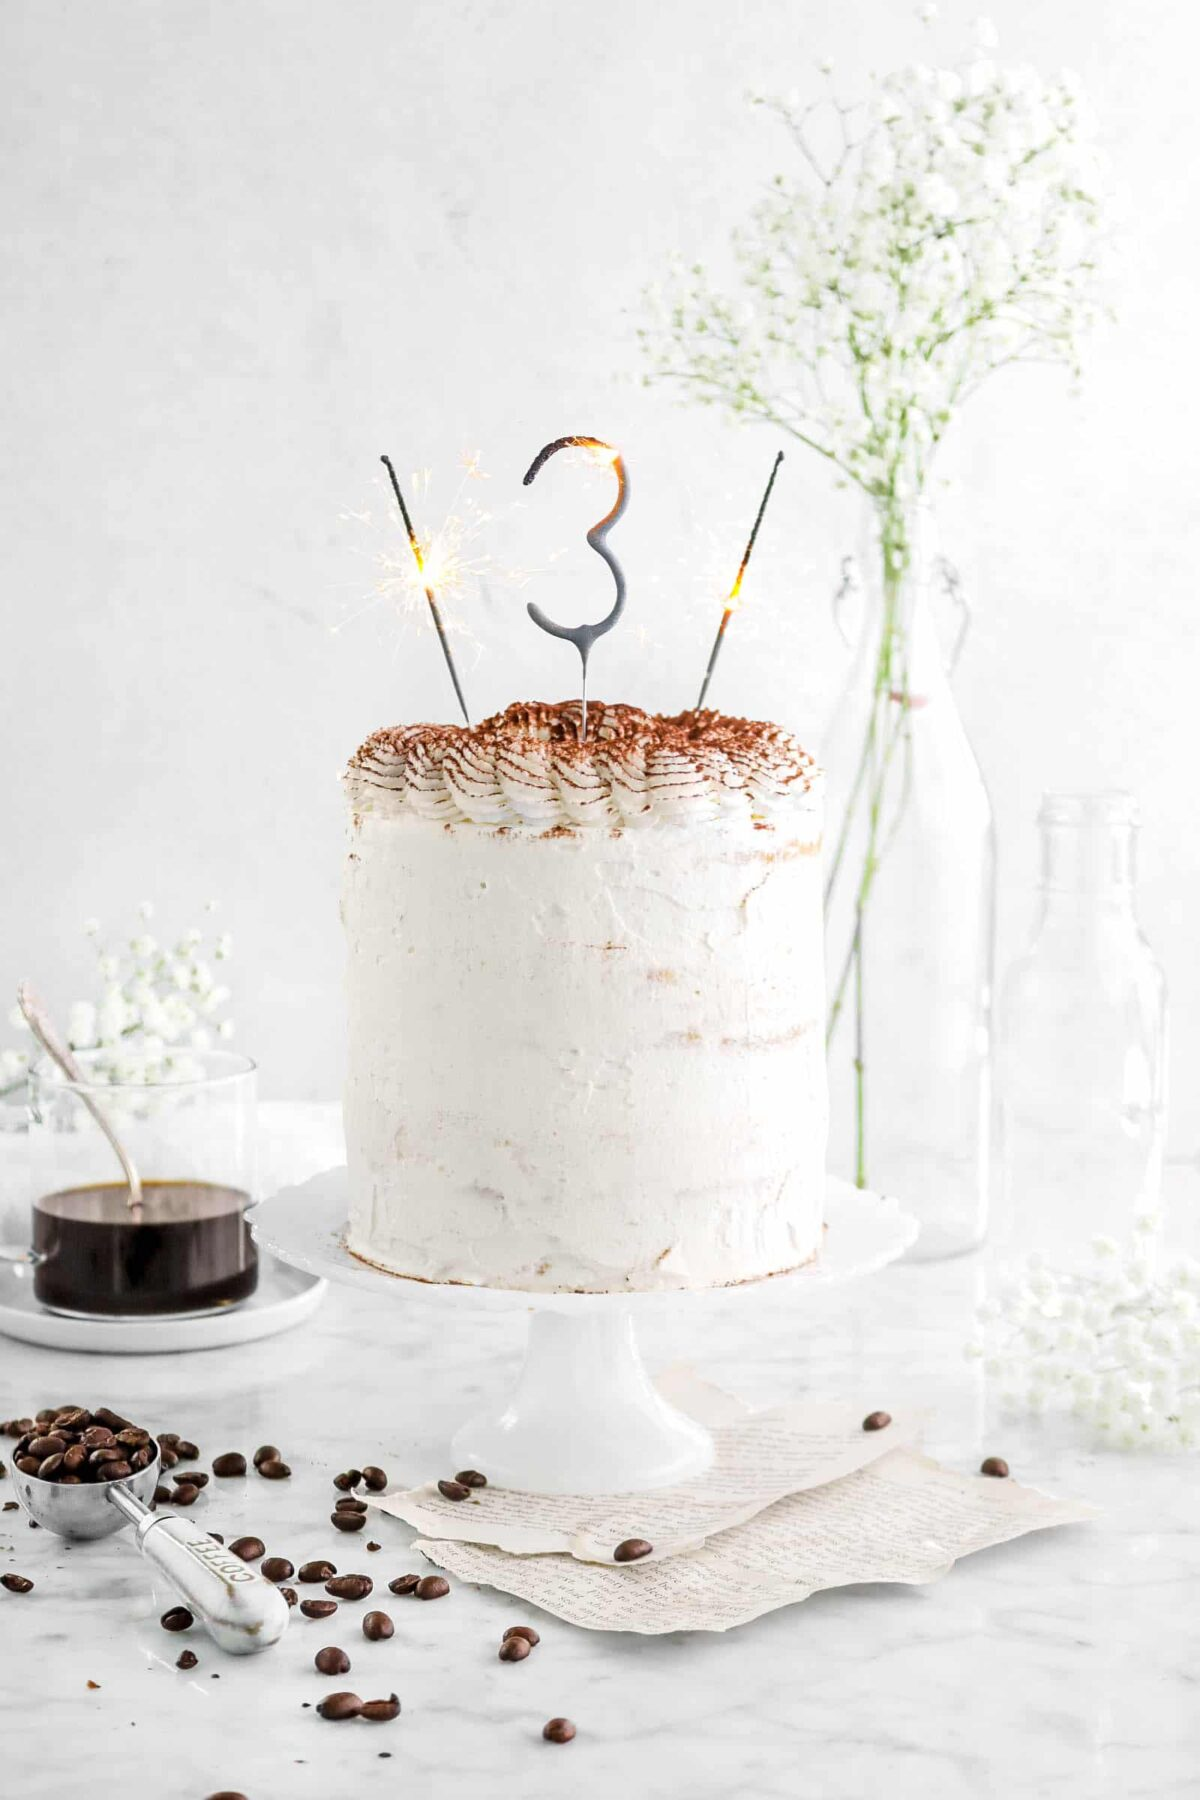 Tiramisu layer cake on cake stand with sparklers, book pages, coffee beans, flowers, and a cup of coffee